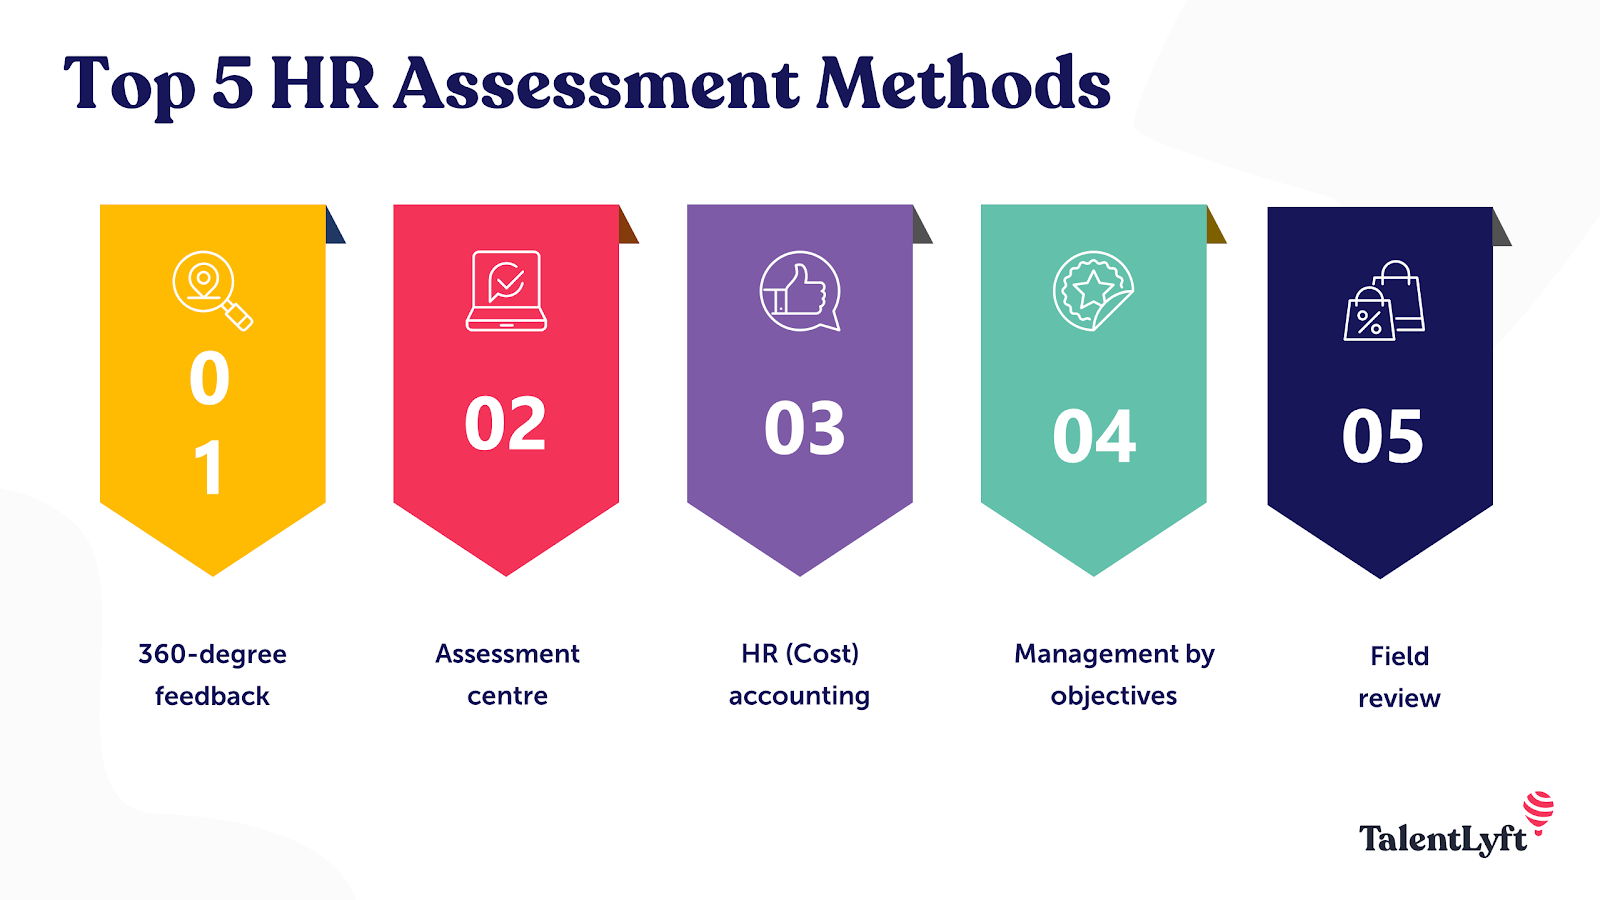 HR assessment methods